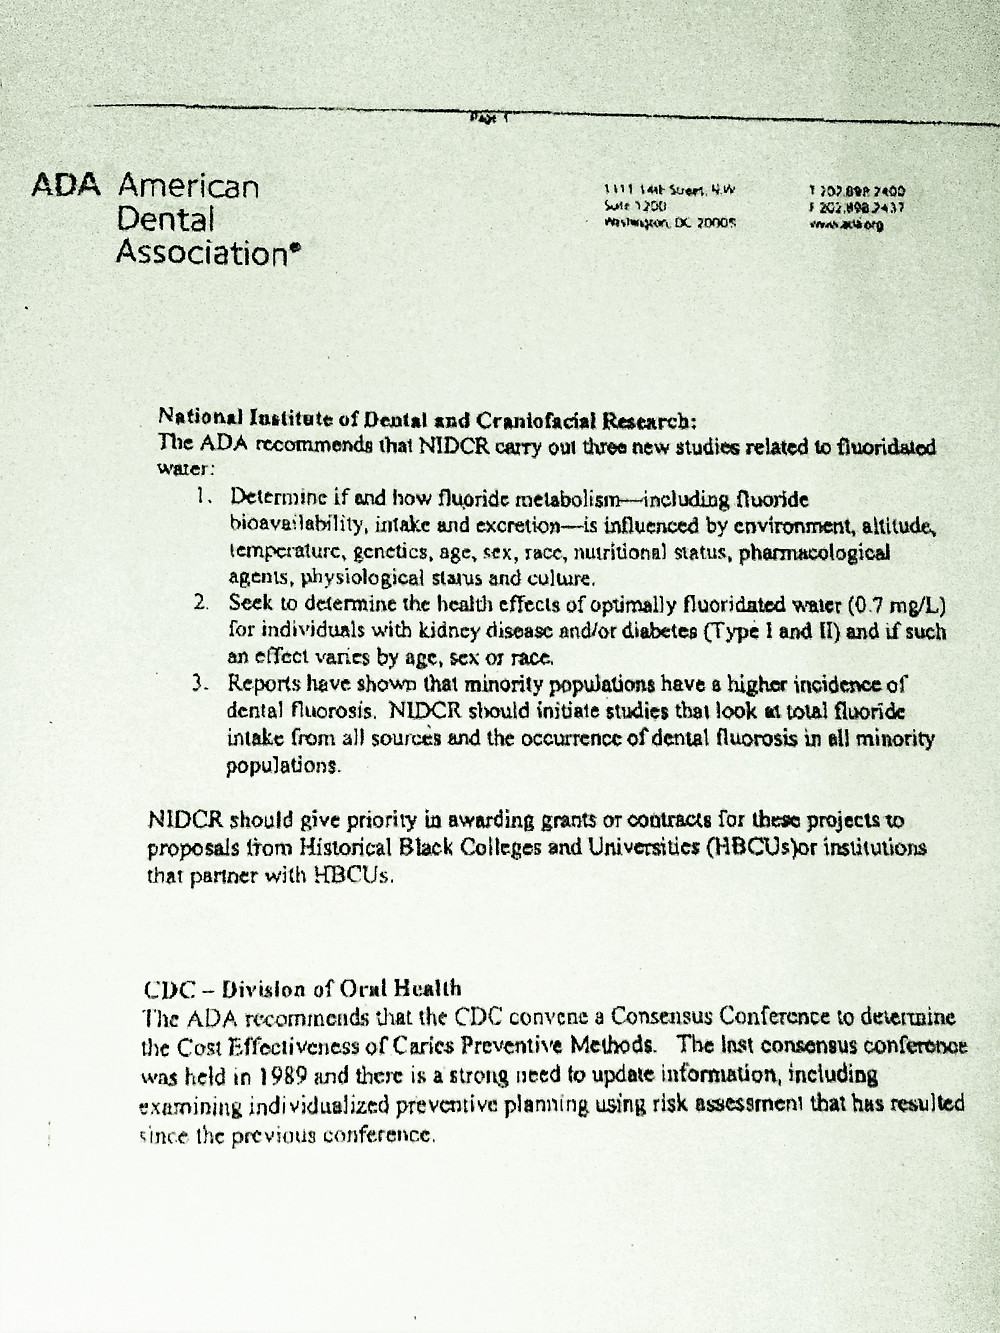 ADA request for further safety evidence on Fluoride